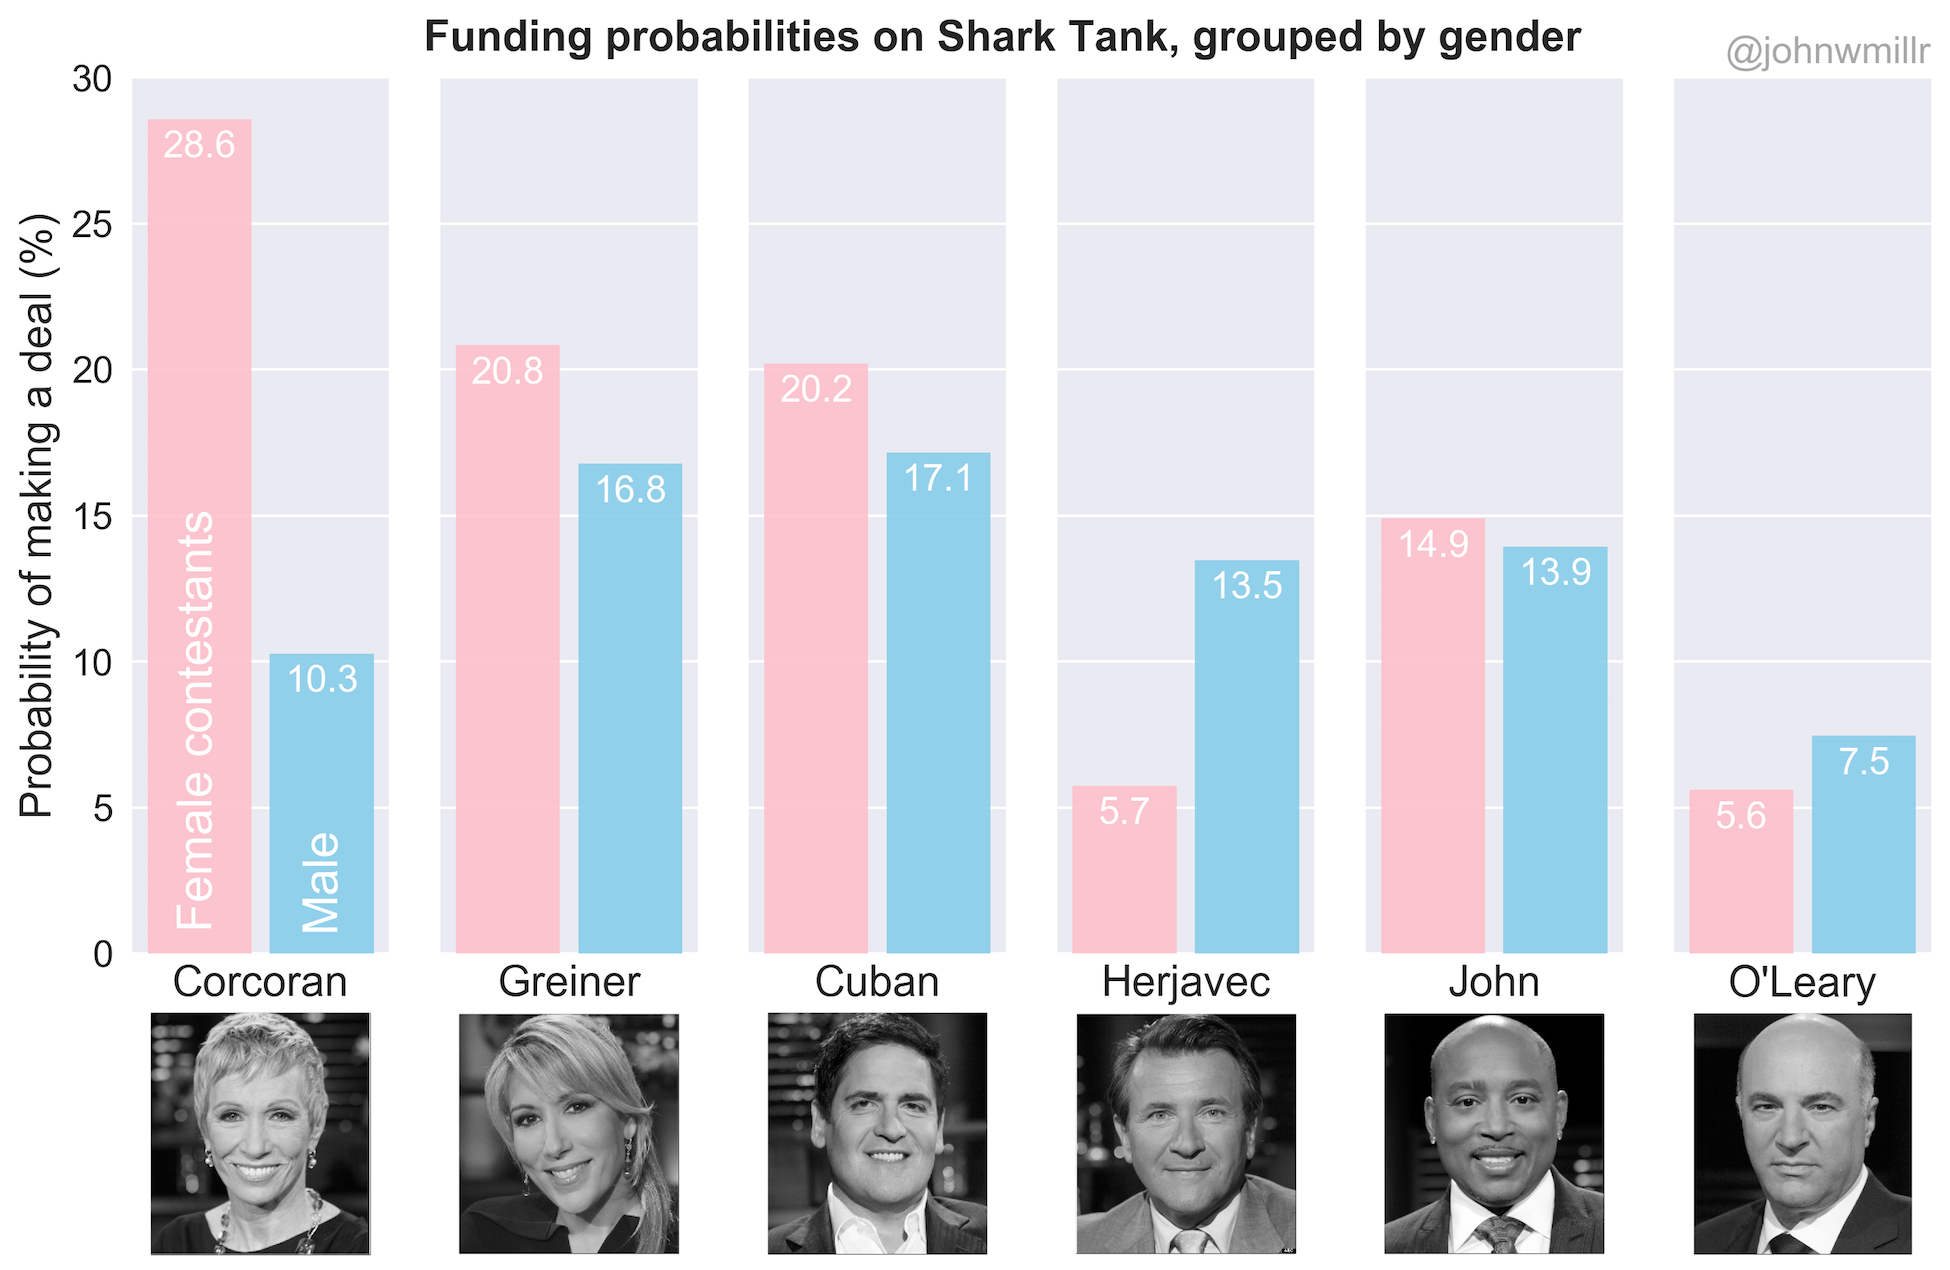 funding probabilities on shark tank, grouped by gender